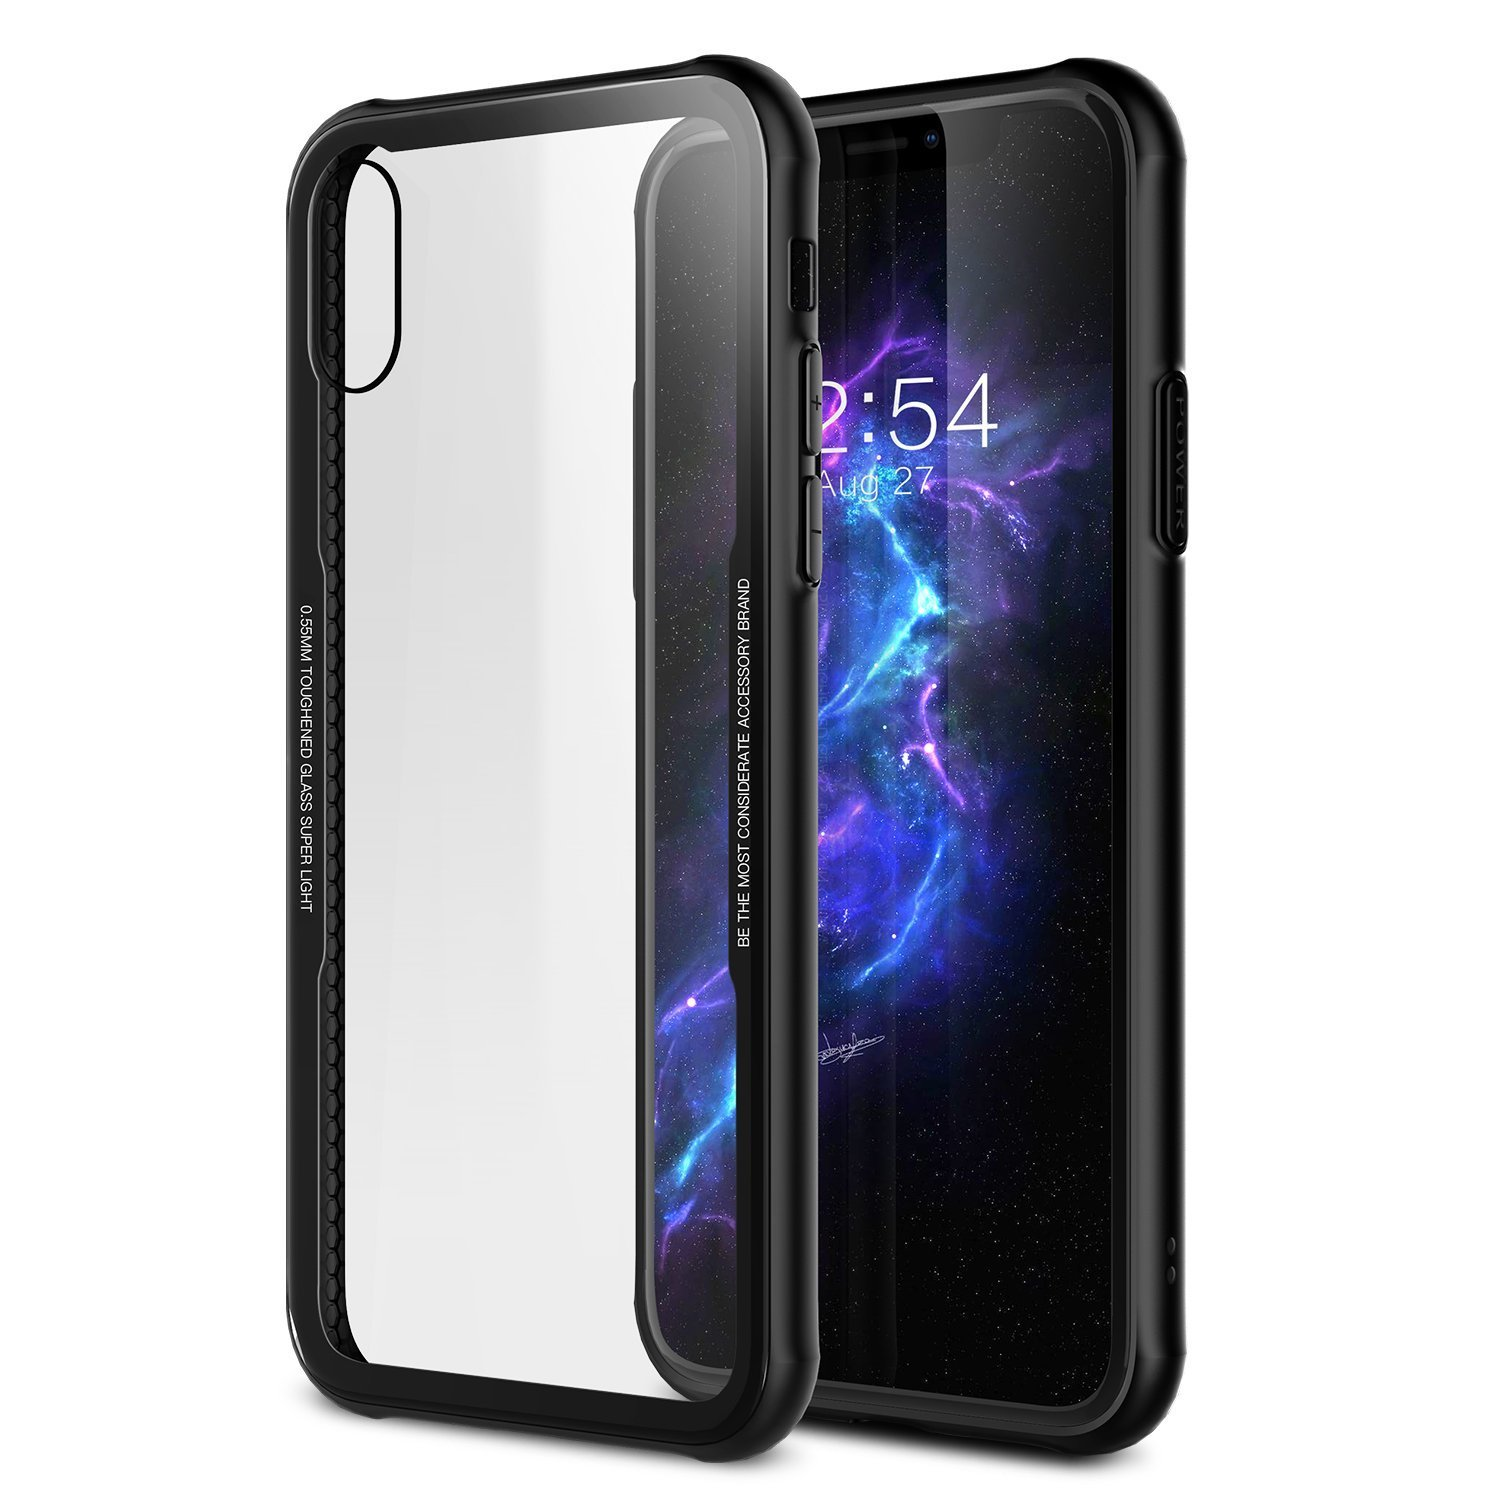 iPhone X Tempered Glass Case,Soft Grip Matte Finish TPU +0.55mm Tempered Glass Hard Back Panel Hybrid Ultra-Thin [ Slim Fit ] Protect Cover Shock Absorption Back-Transparent Bumper for iPhone 10 / X